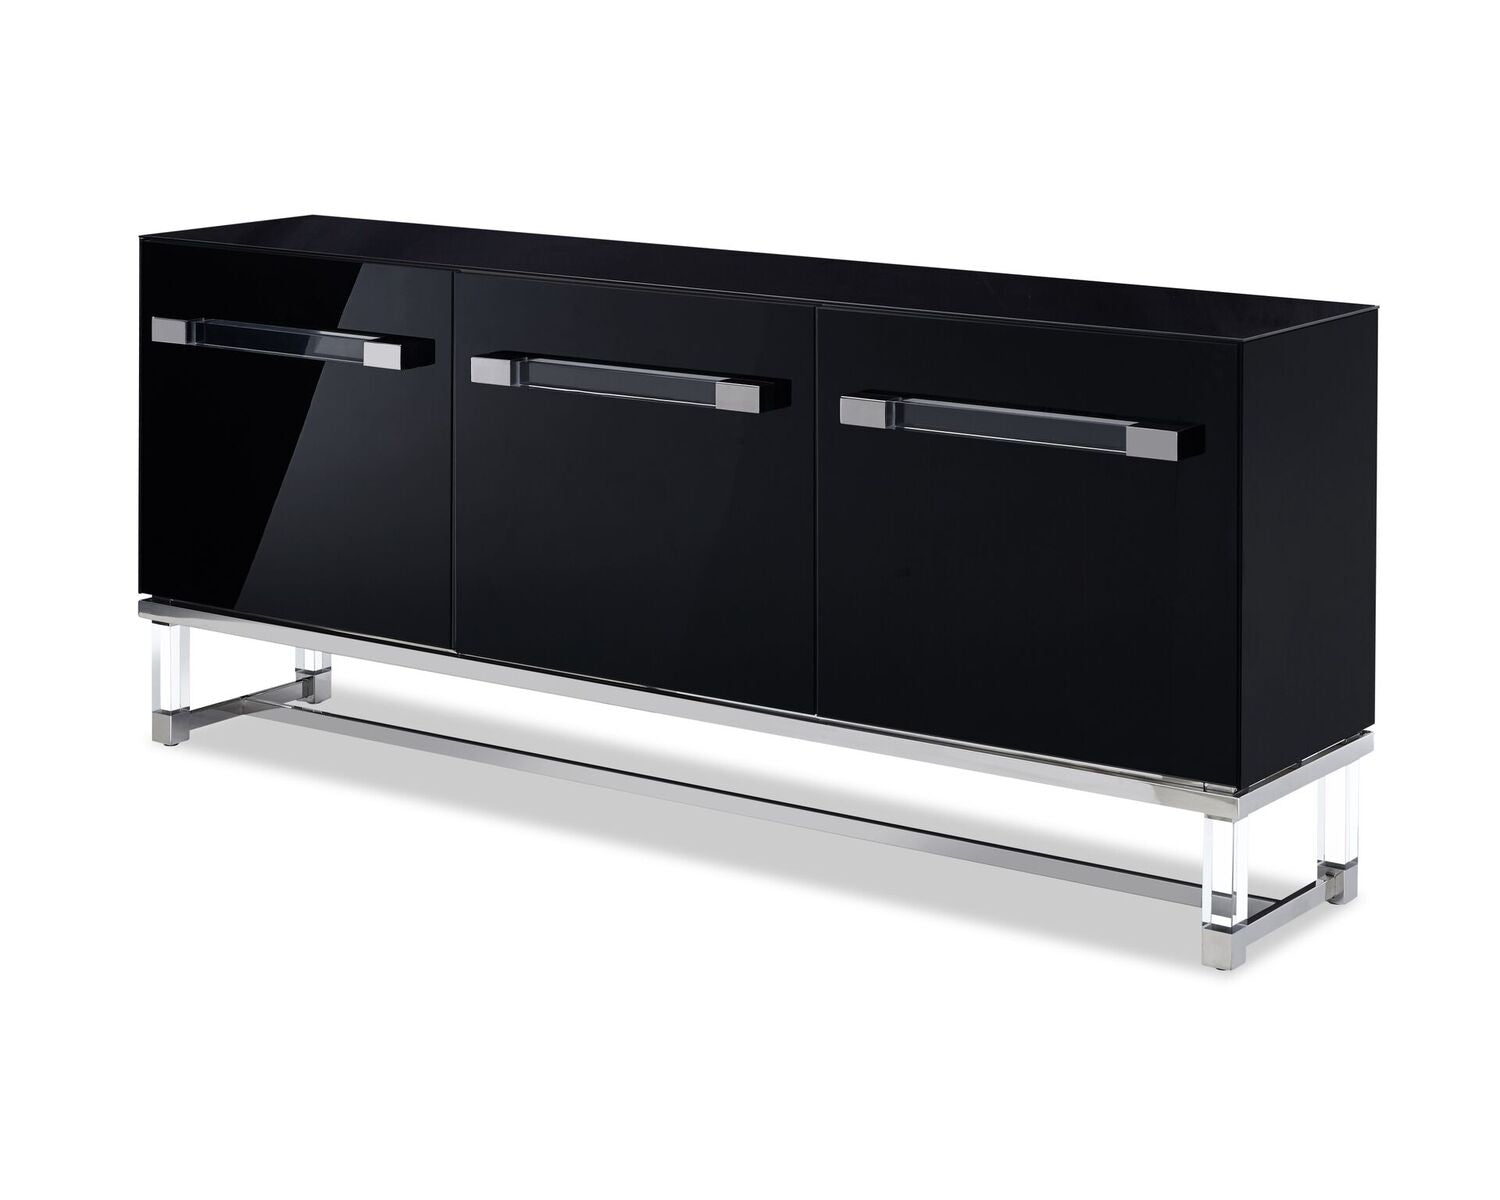 Striking Black Glossy Storage Credenza